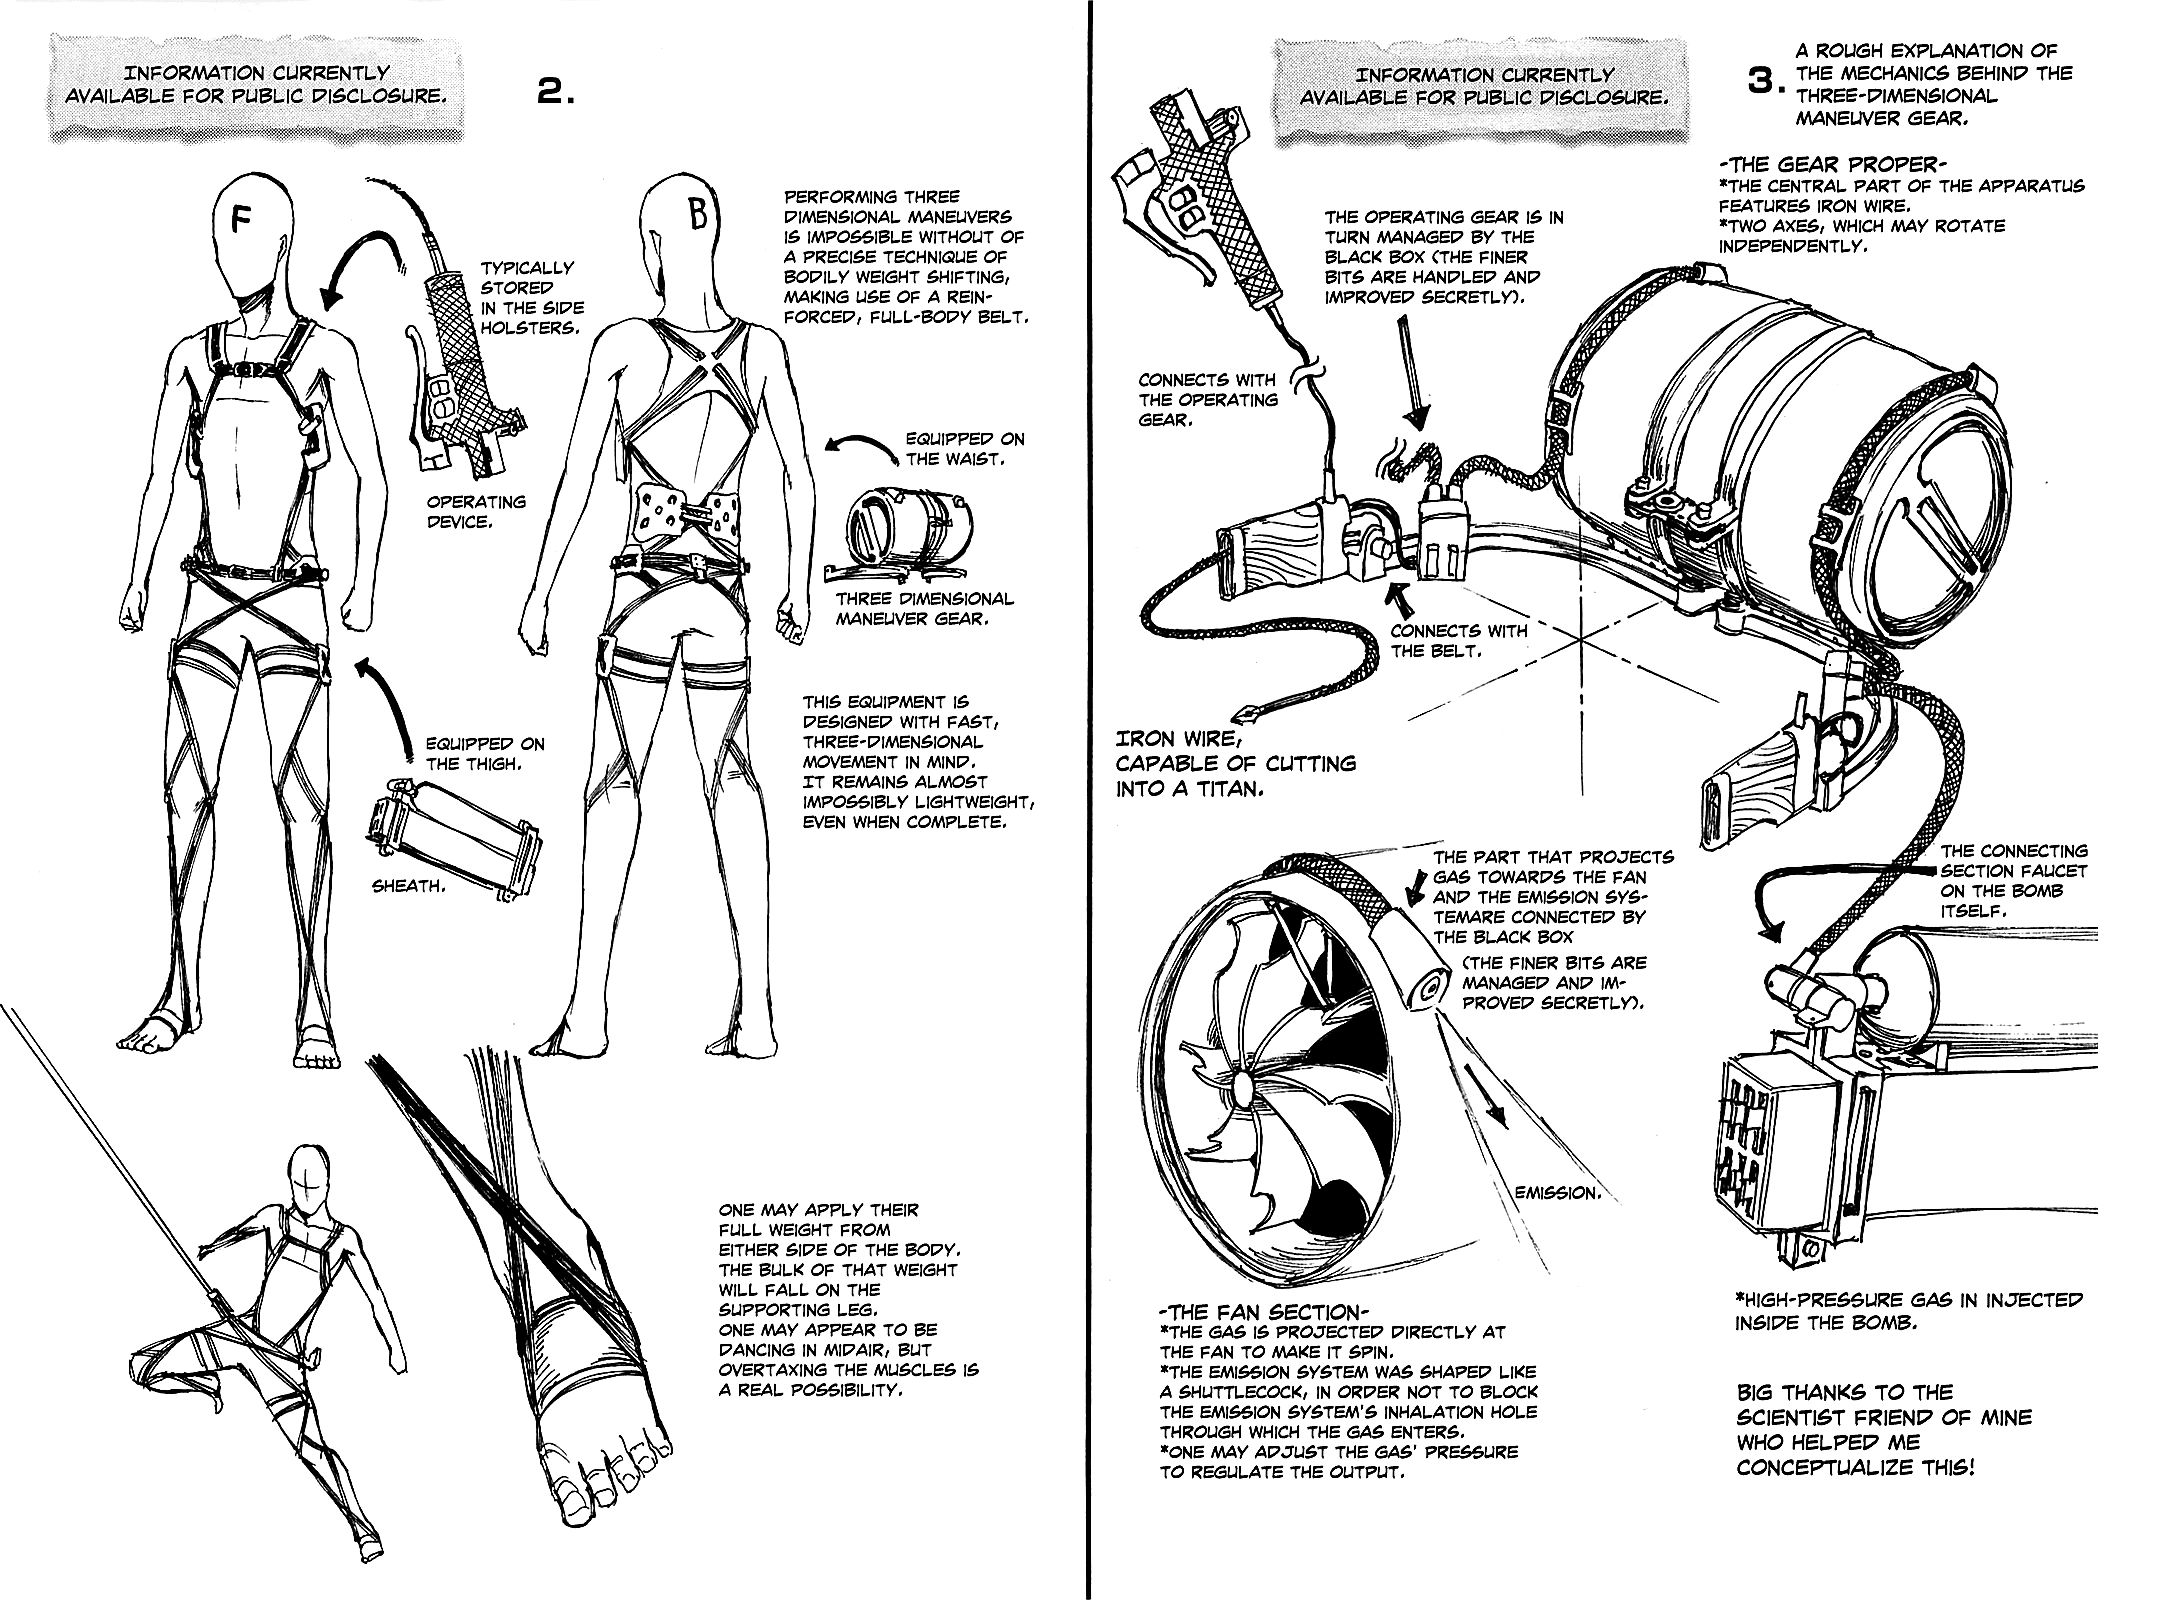 Trailer Wiring Diagrams as well Download furthermore Download likewise Sciencing The Shit Out Of Attack On Titans 3d Maneuver Gear furthermore Amc V 8 5 0l 304 And 5 9l 360 Engine Parts. on schematics e